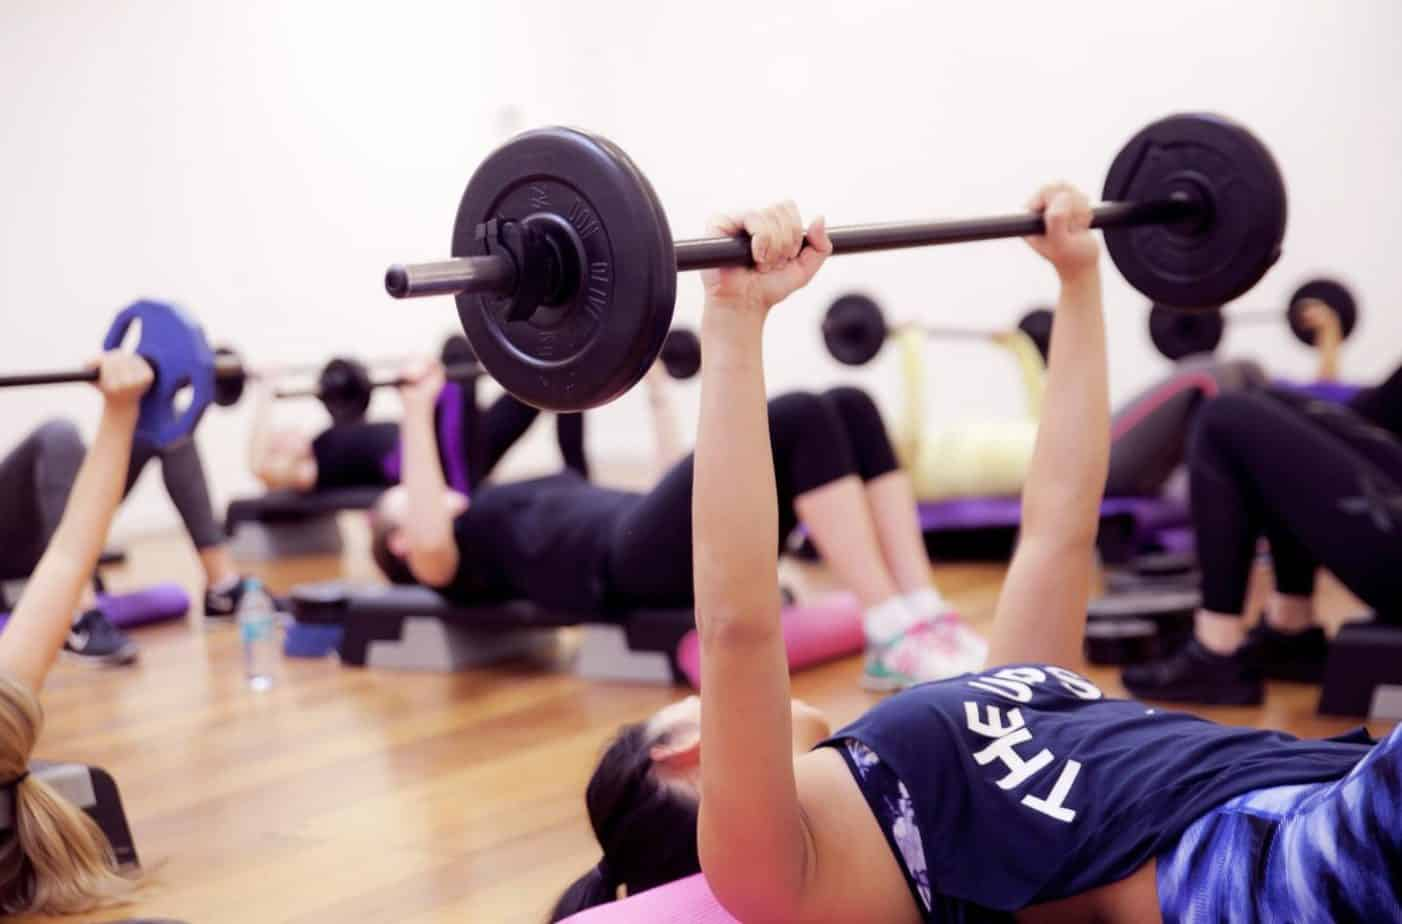 Lift The Nation: Why weight training works for women